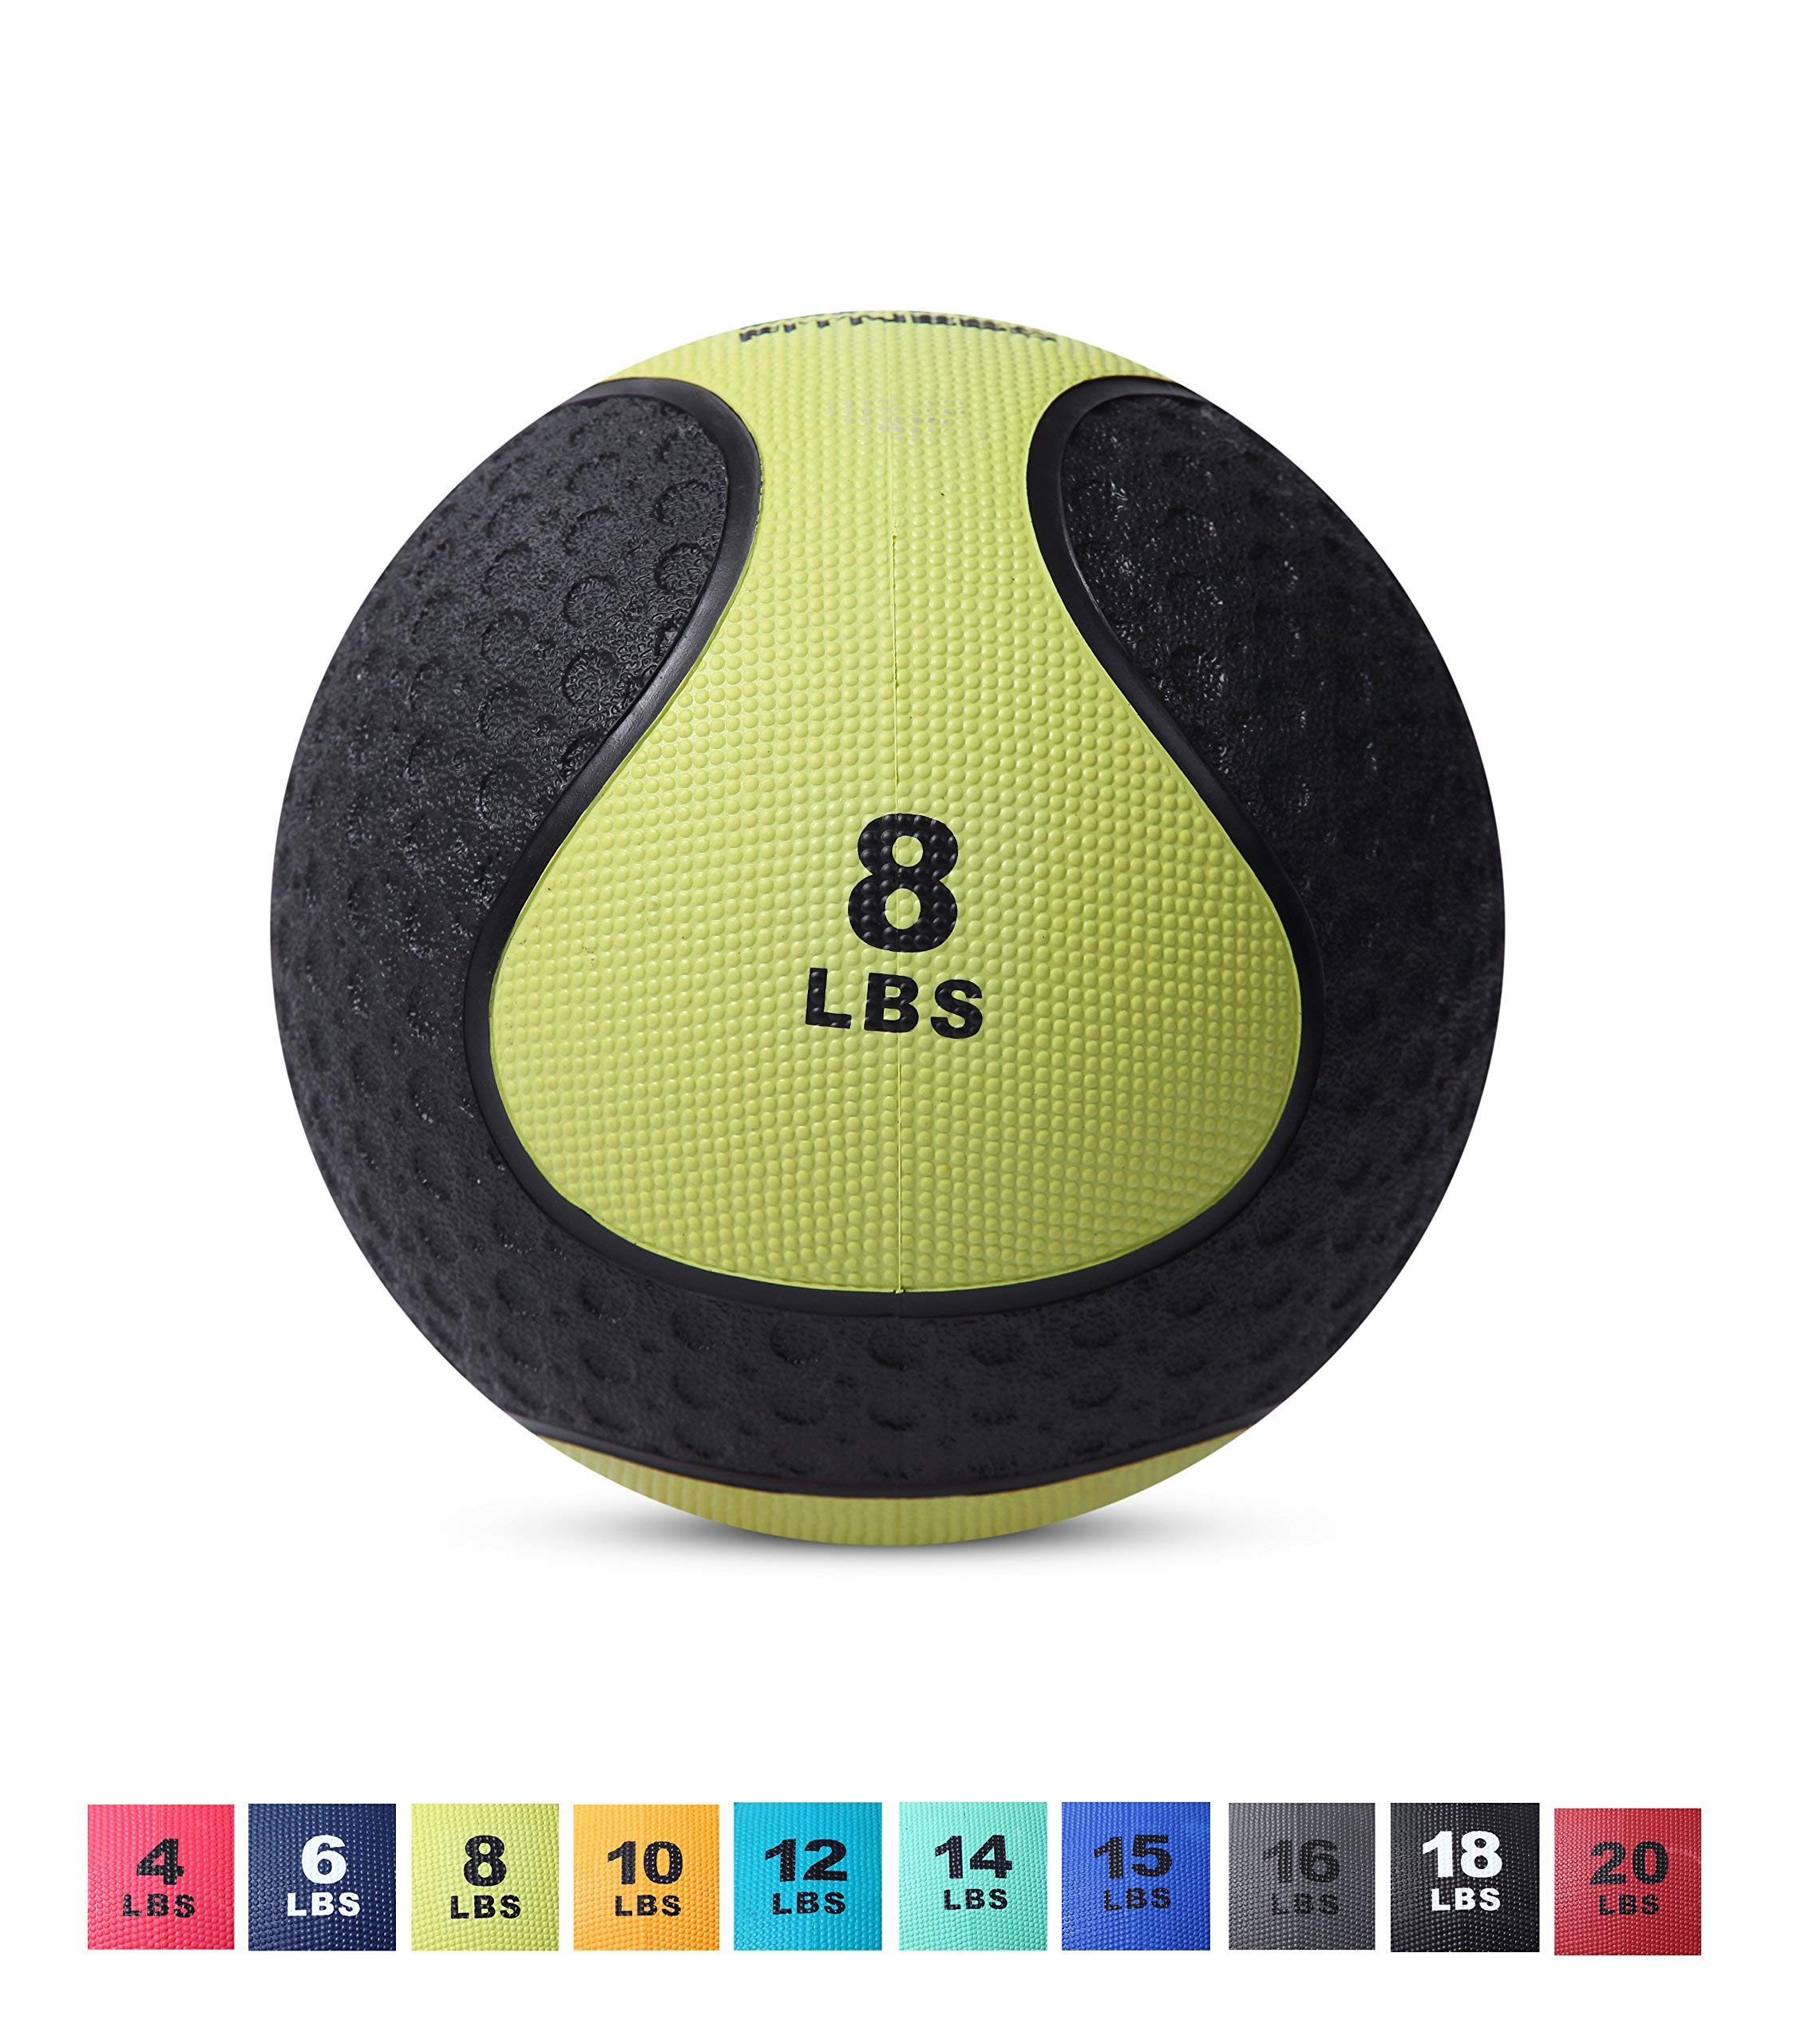 Day 1 Fitness Medicine Exercise Ball with Dual Texture for Superior Grip 8 Pounds - Fitness Balls for Plyometrics, Workouts - Improves Balance, Flexibility, Coordination (Renewed)